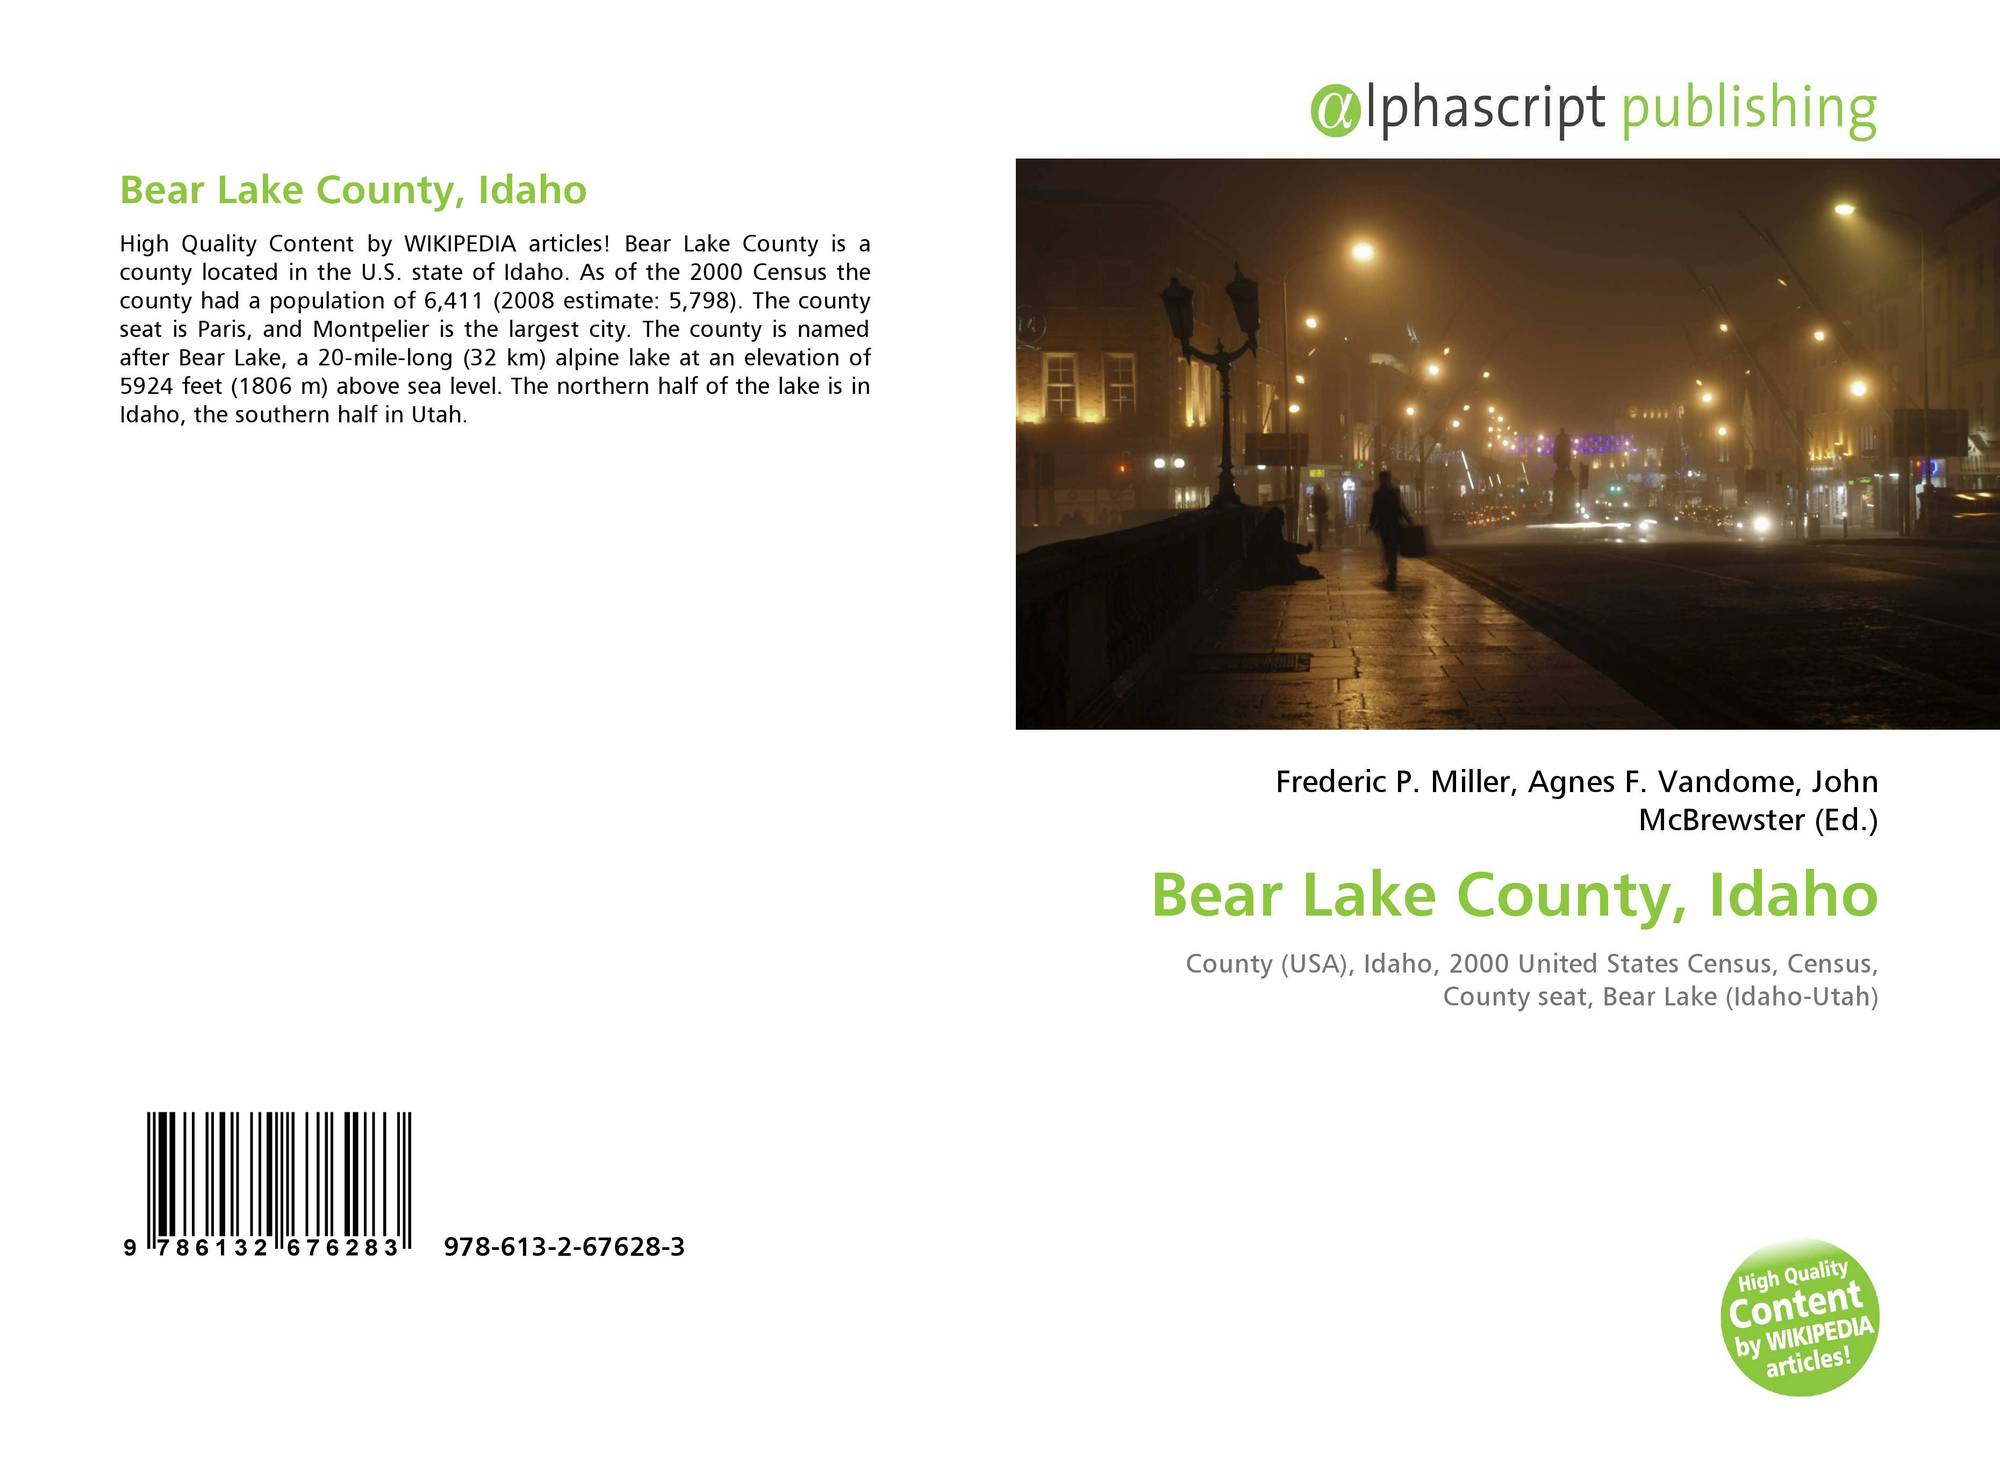 bear lake county singles Search for bear lake county id gis maps and property maps property maps show property and parcel boundaries, municipal boundaries, and zoning boundaries, and gis maps show floodplains, air traffic patterns, and soil composition.